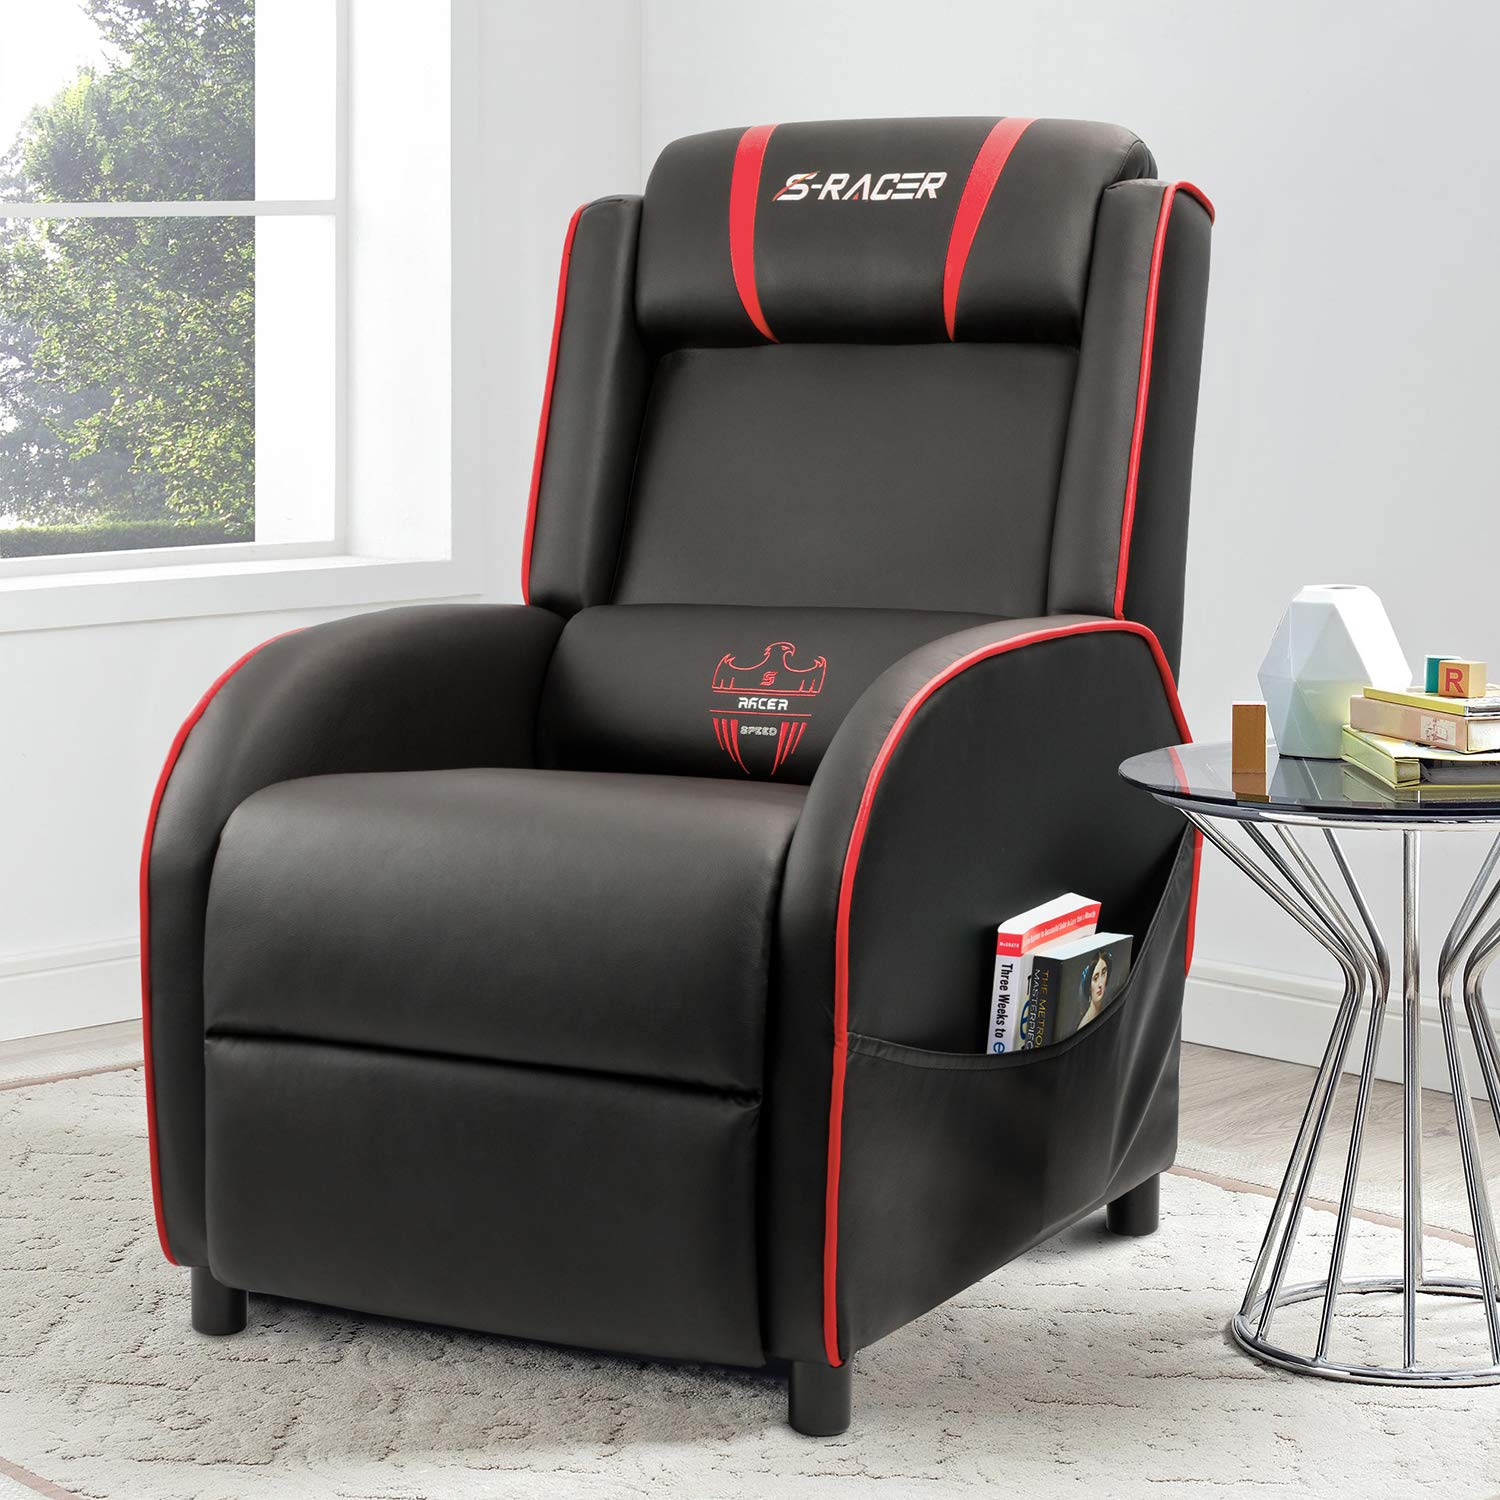 Homall Gaming Recliner Chair Single Living Room Sofa Recliner PU Leather Recliner Seat Home Theater Seating Red